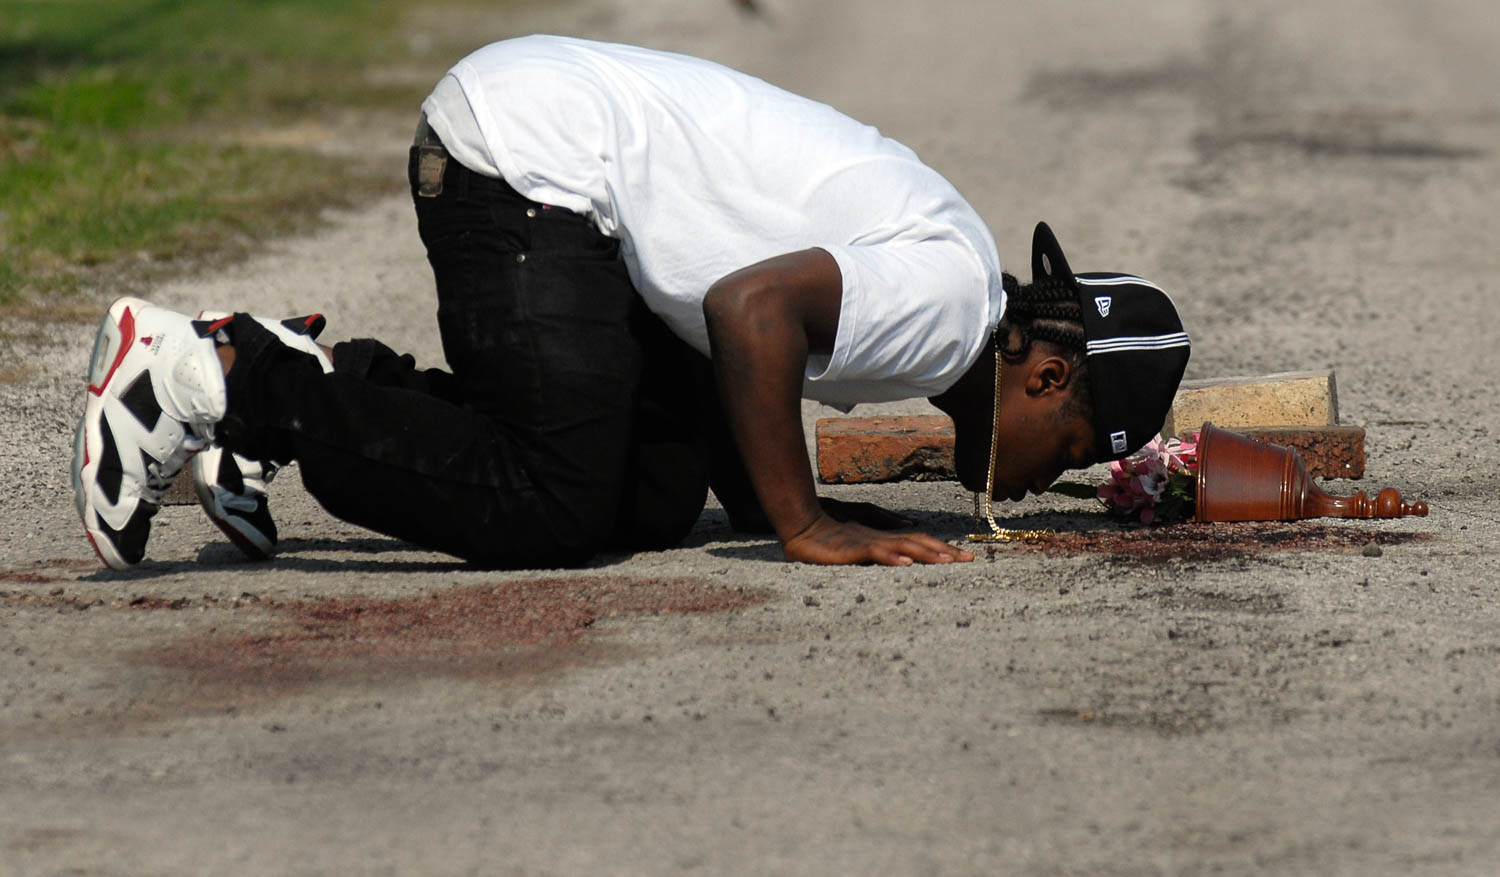 Joe Williams of Carbon Cliff kisses the blood-stained pavement Thursday morning in the East Moline Ill. alley where his cousin Kelton Trice was shot and killed by police Wednesday evening. Police investigators said Trice was killed during an exchange of gunfire with East Moline police officer Sgt. Tom Peterson. (Todd Mizener - Dispatch/Argus)